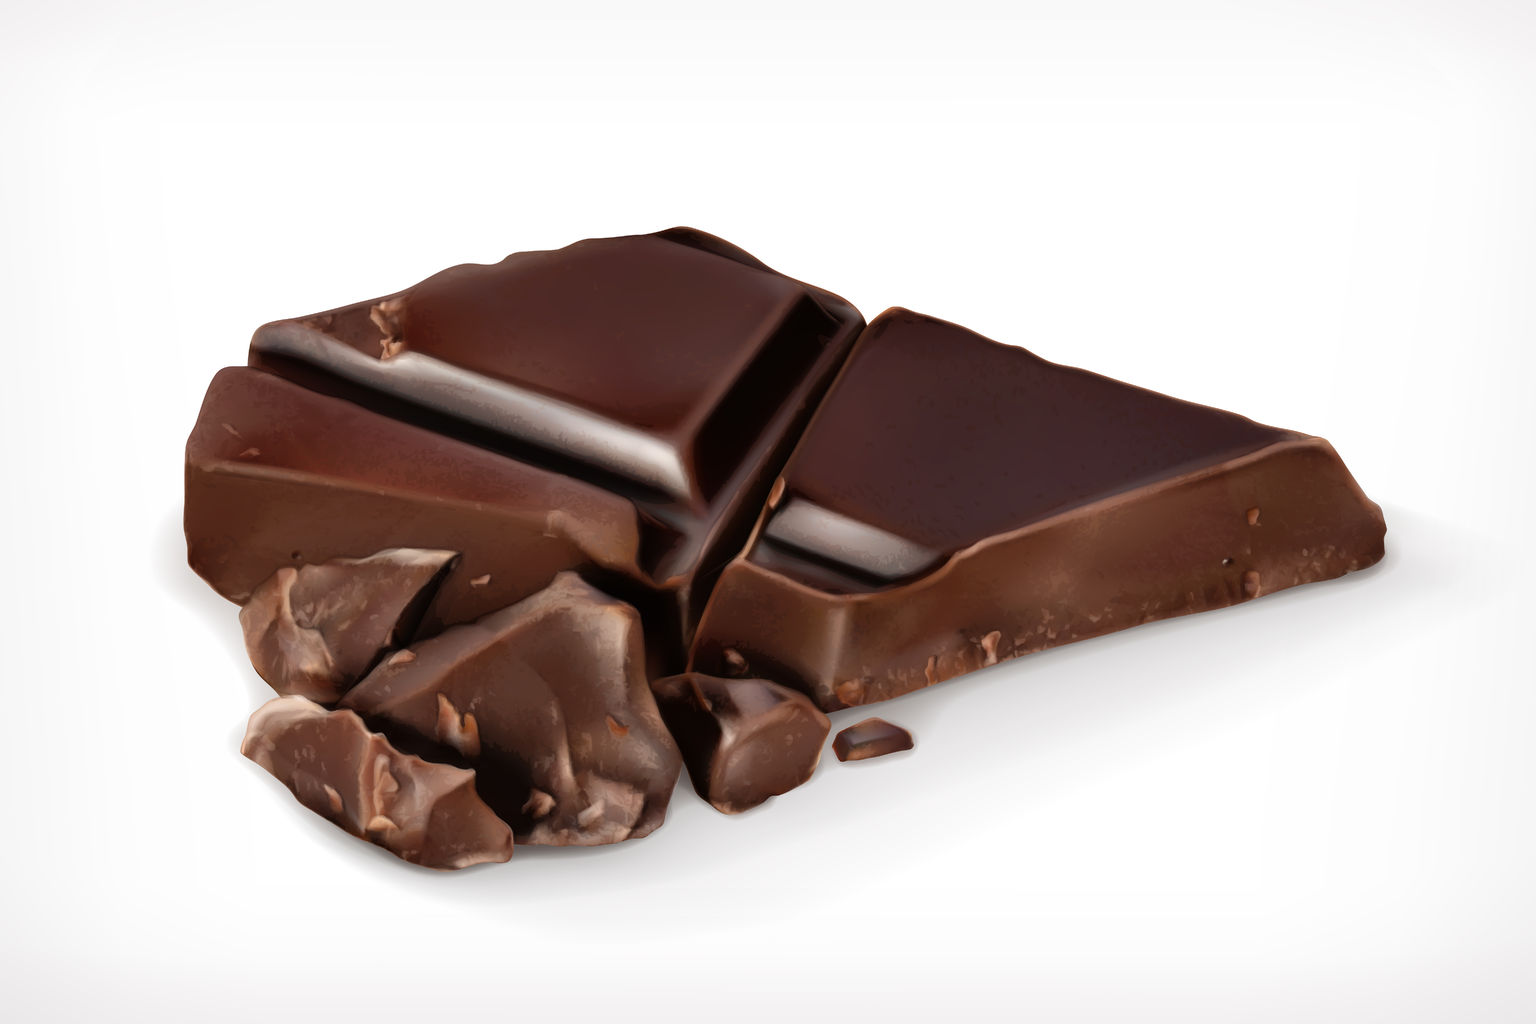 dark chocolate improves cholesterol and diabetes